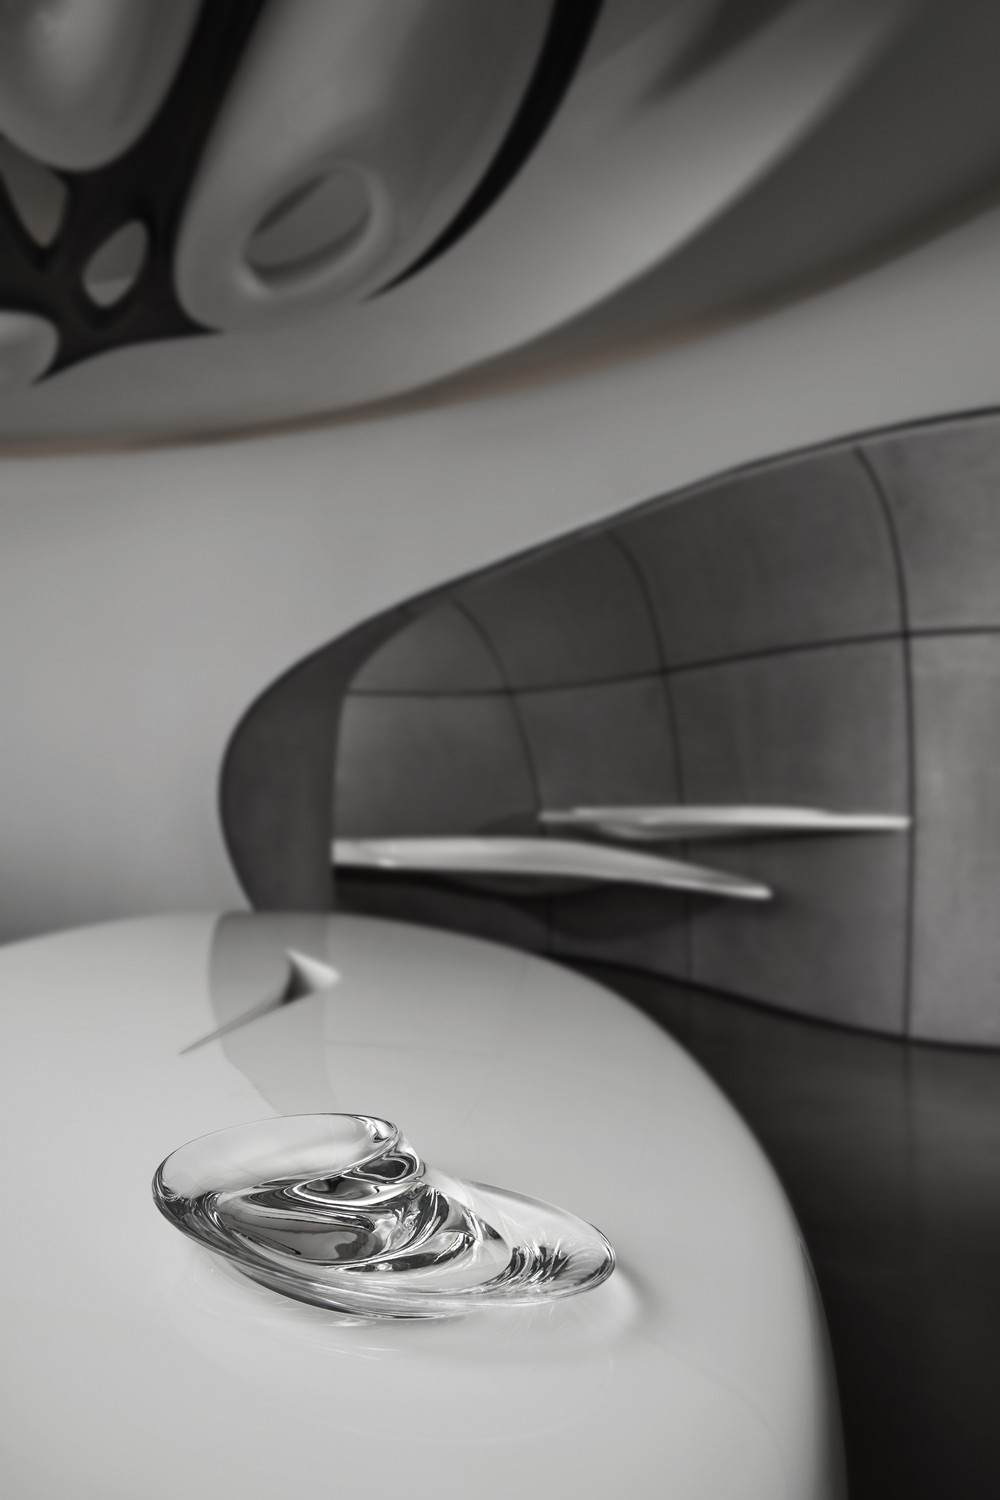 Unveiling the Stunning New 2019 Collection of Zaha Hadid Design 9 Zaha Hadid Design Unveiling the Stunning New 2019 Collection of Zaha Hadid Design Unveiling the Stunning New 2019 Collection of Zaha Hadid Design 9